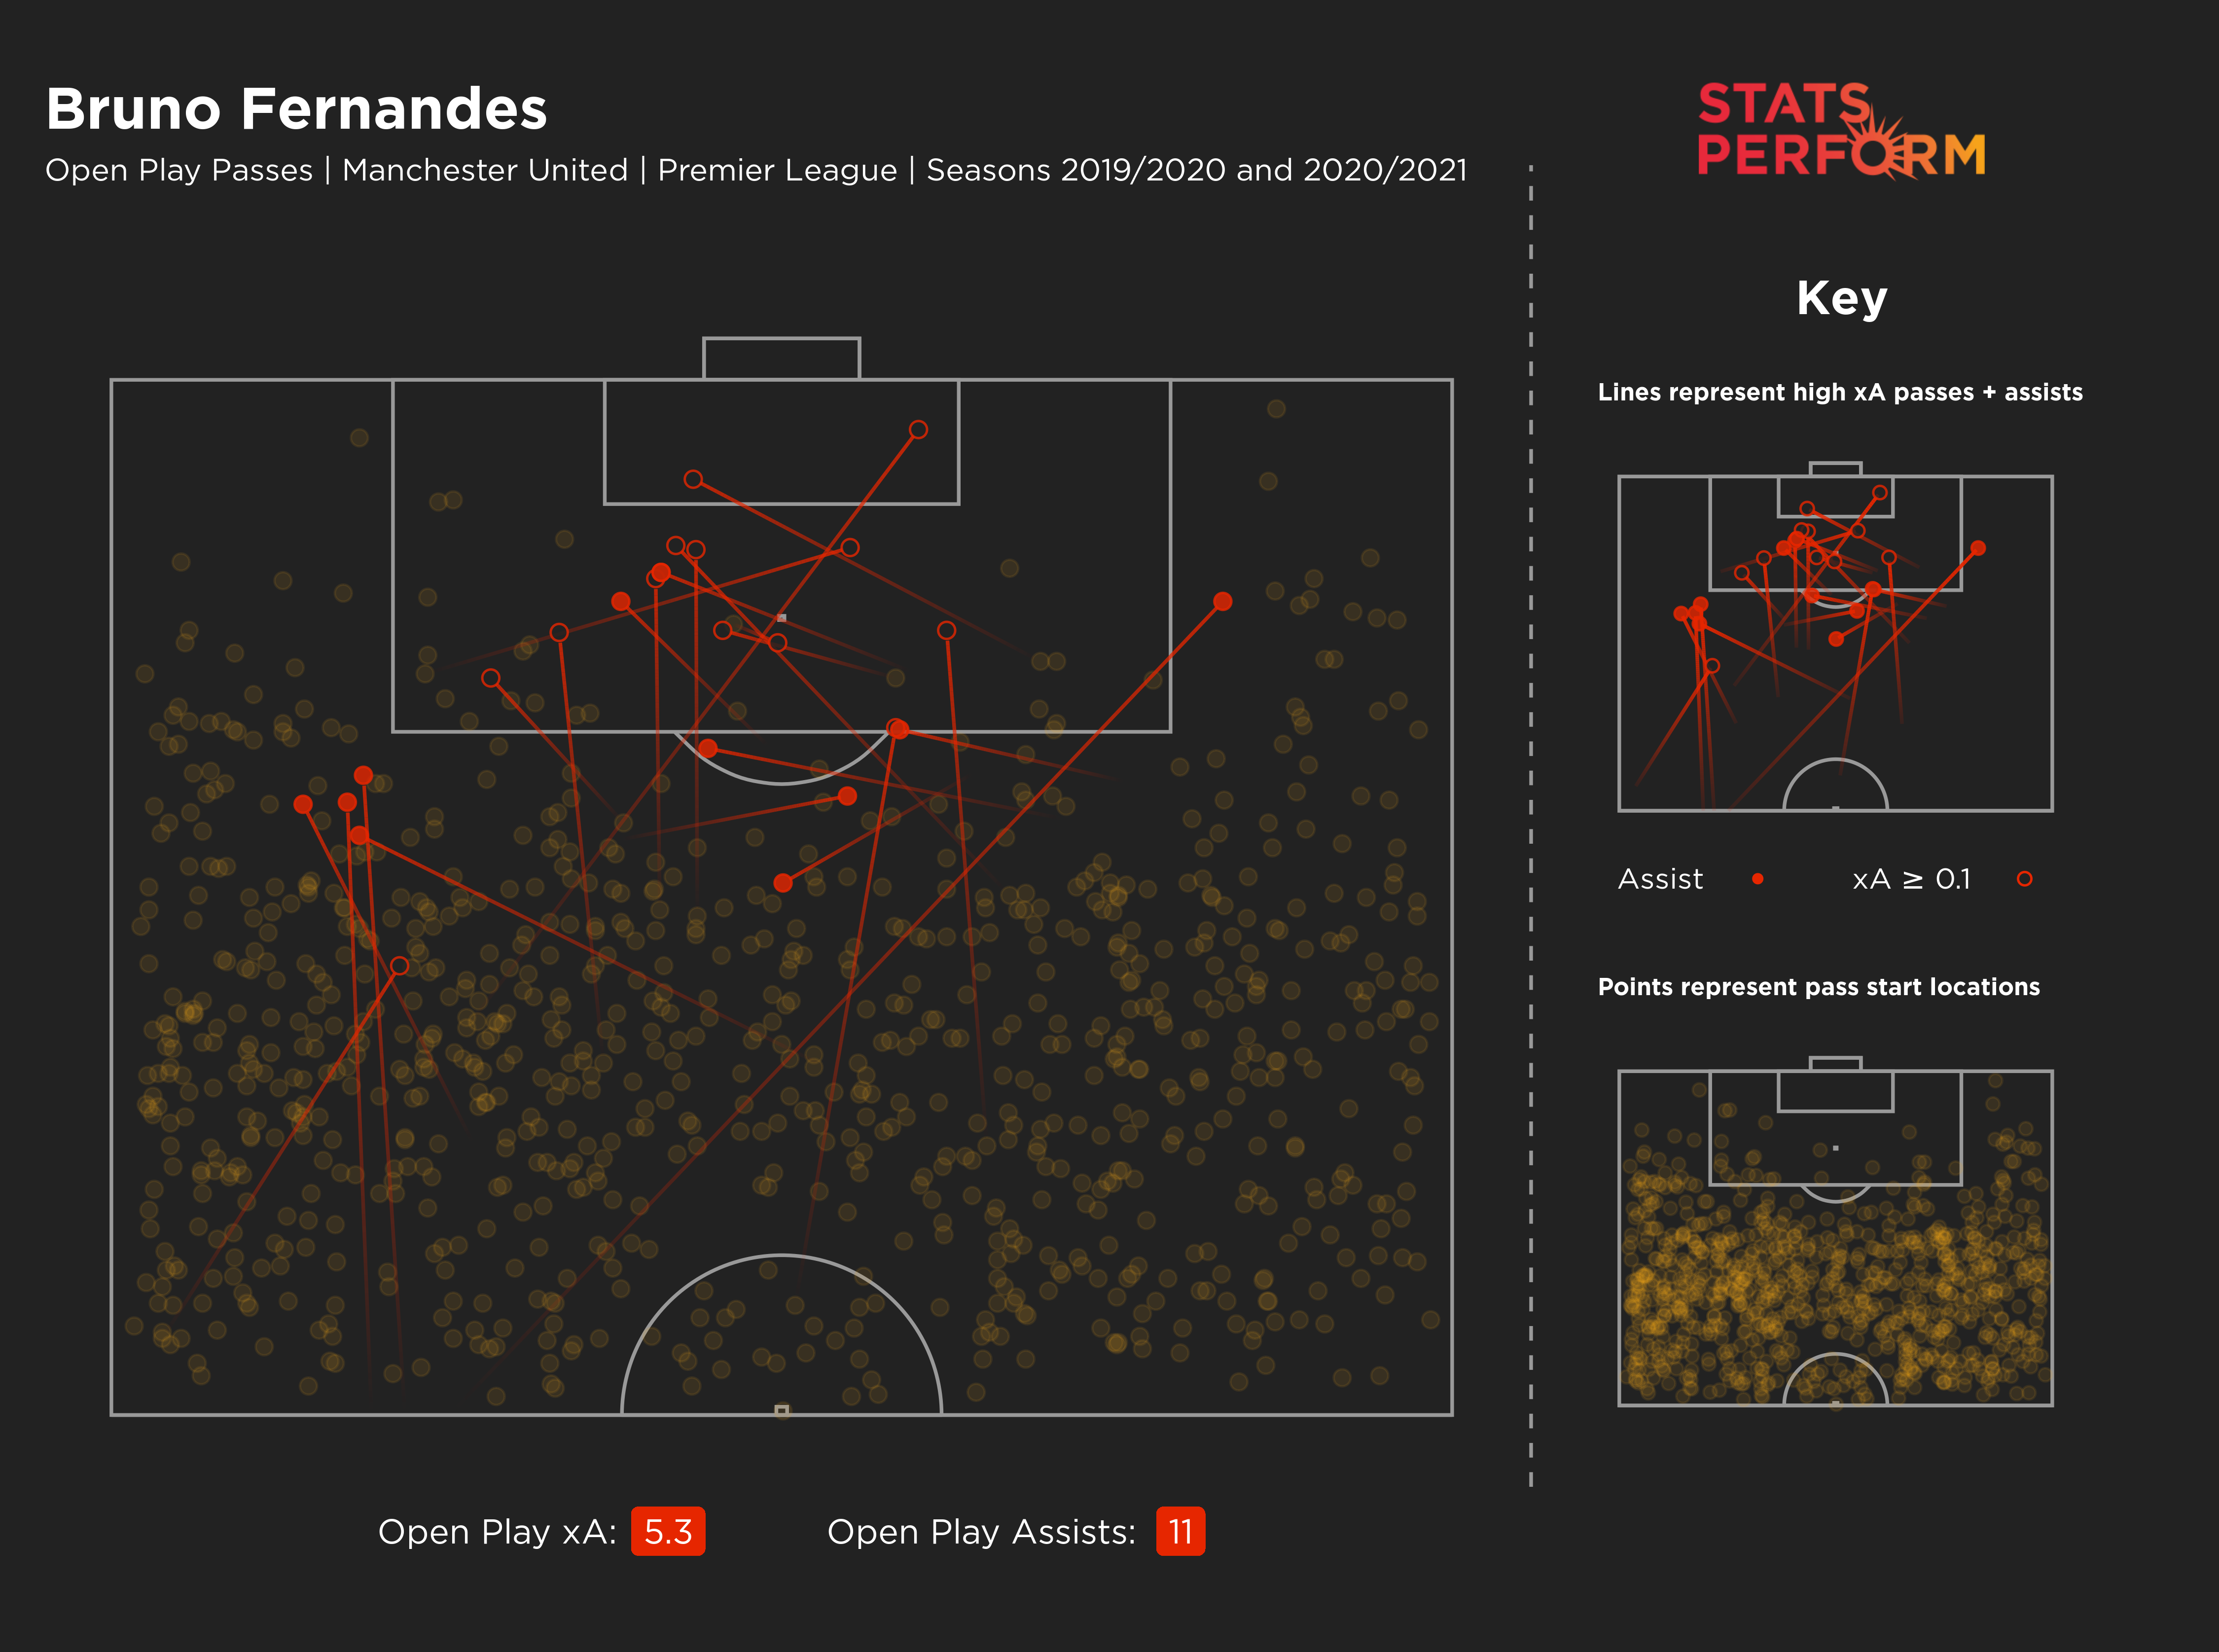 Bruno Fernandes' expected assists map in the Premier League since joining Manchester United